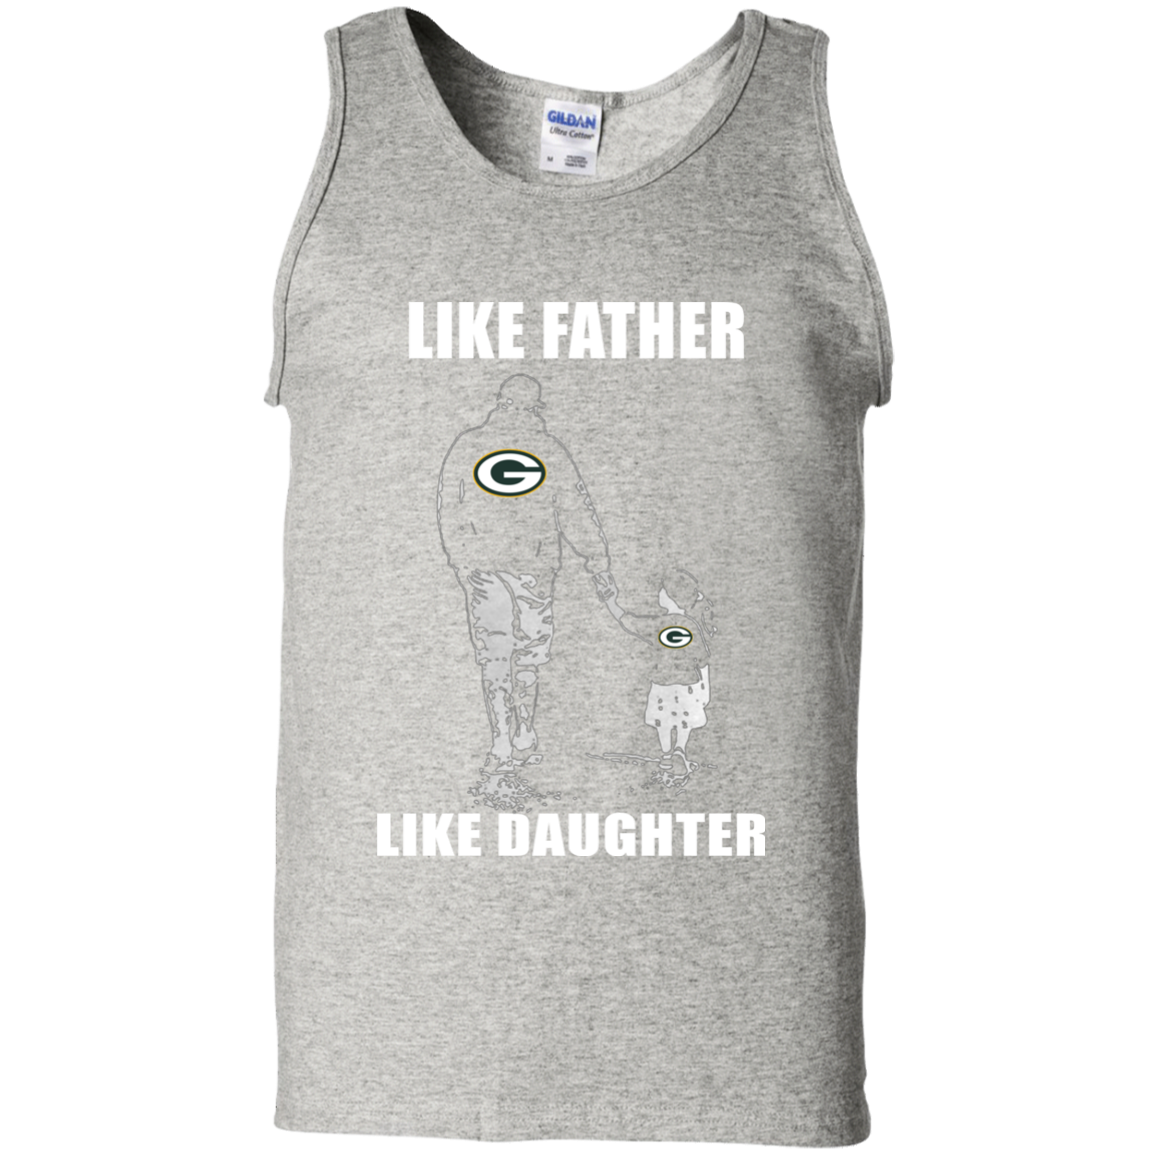 7cc74d387 Like Father Like Daughter – Green Bay Packers T Shirt G220 Gildan 100%  Cotton Tank ...